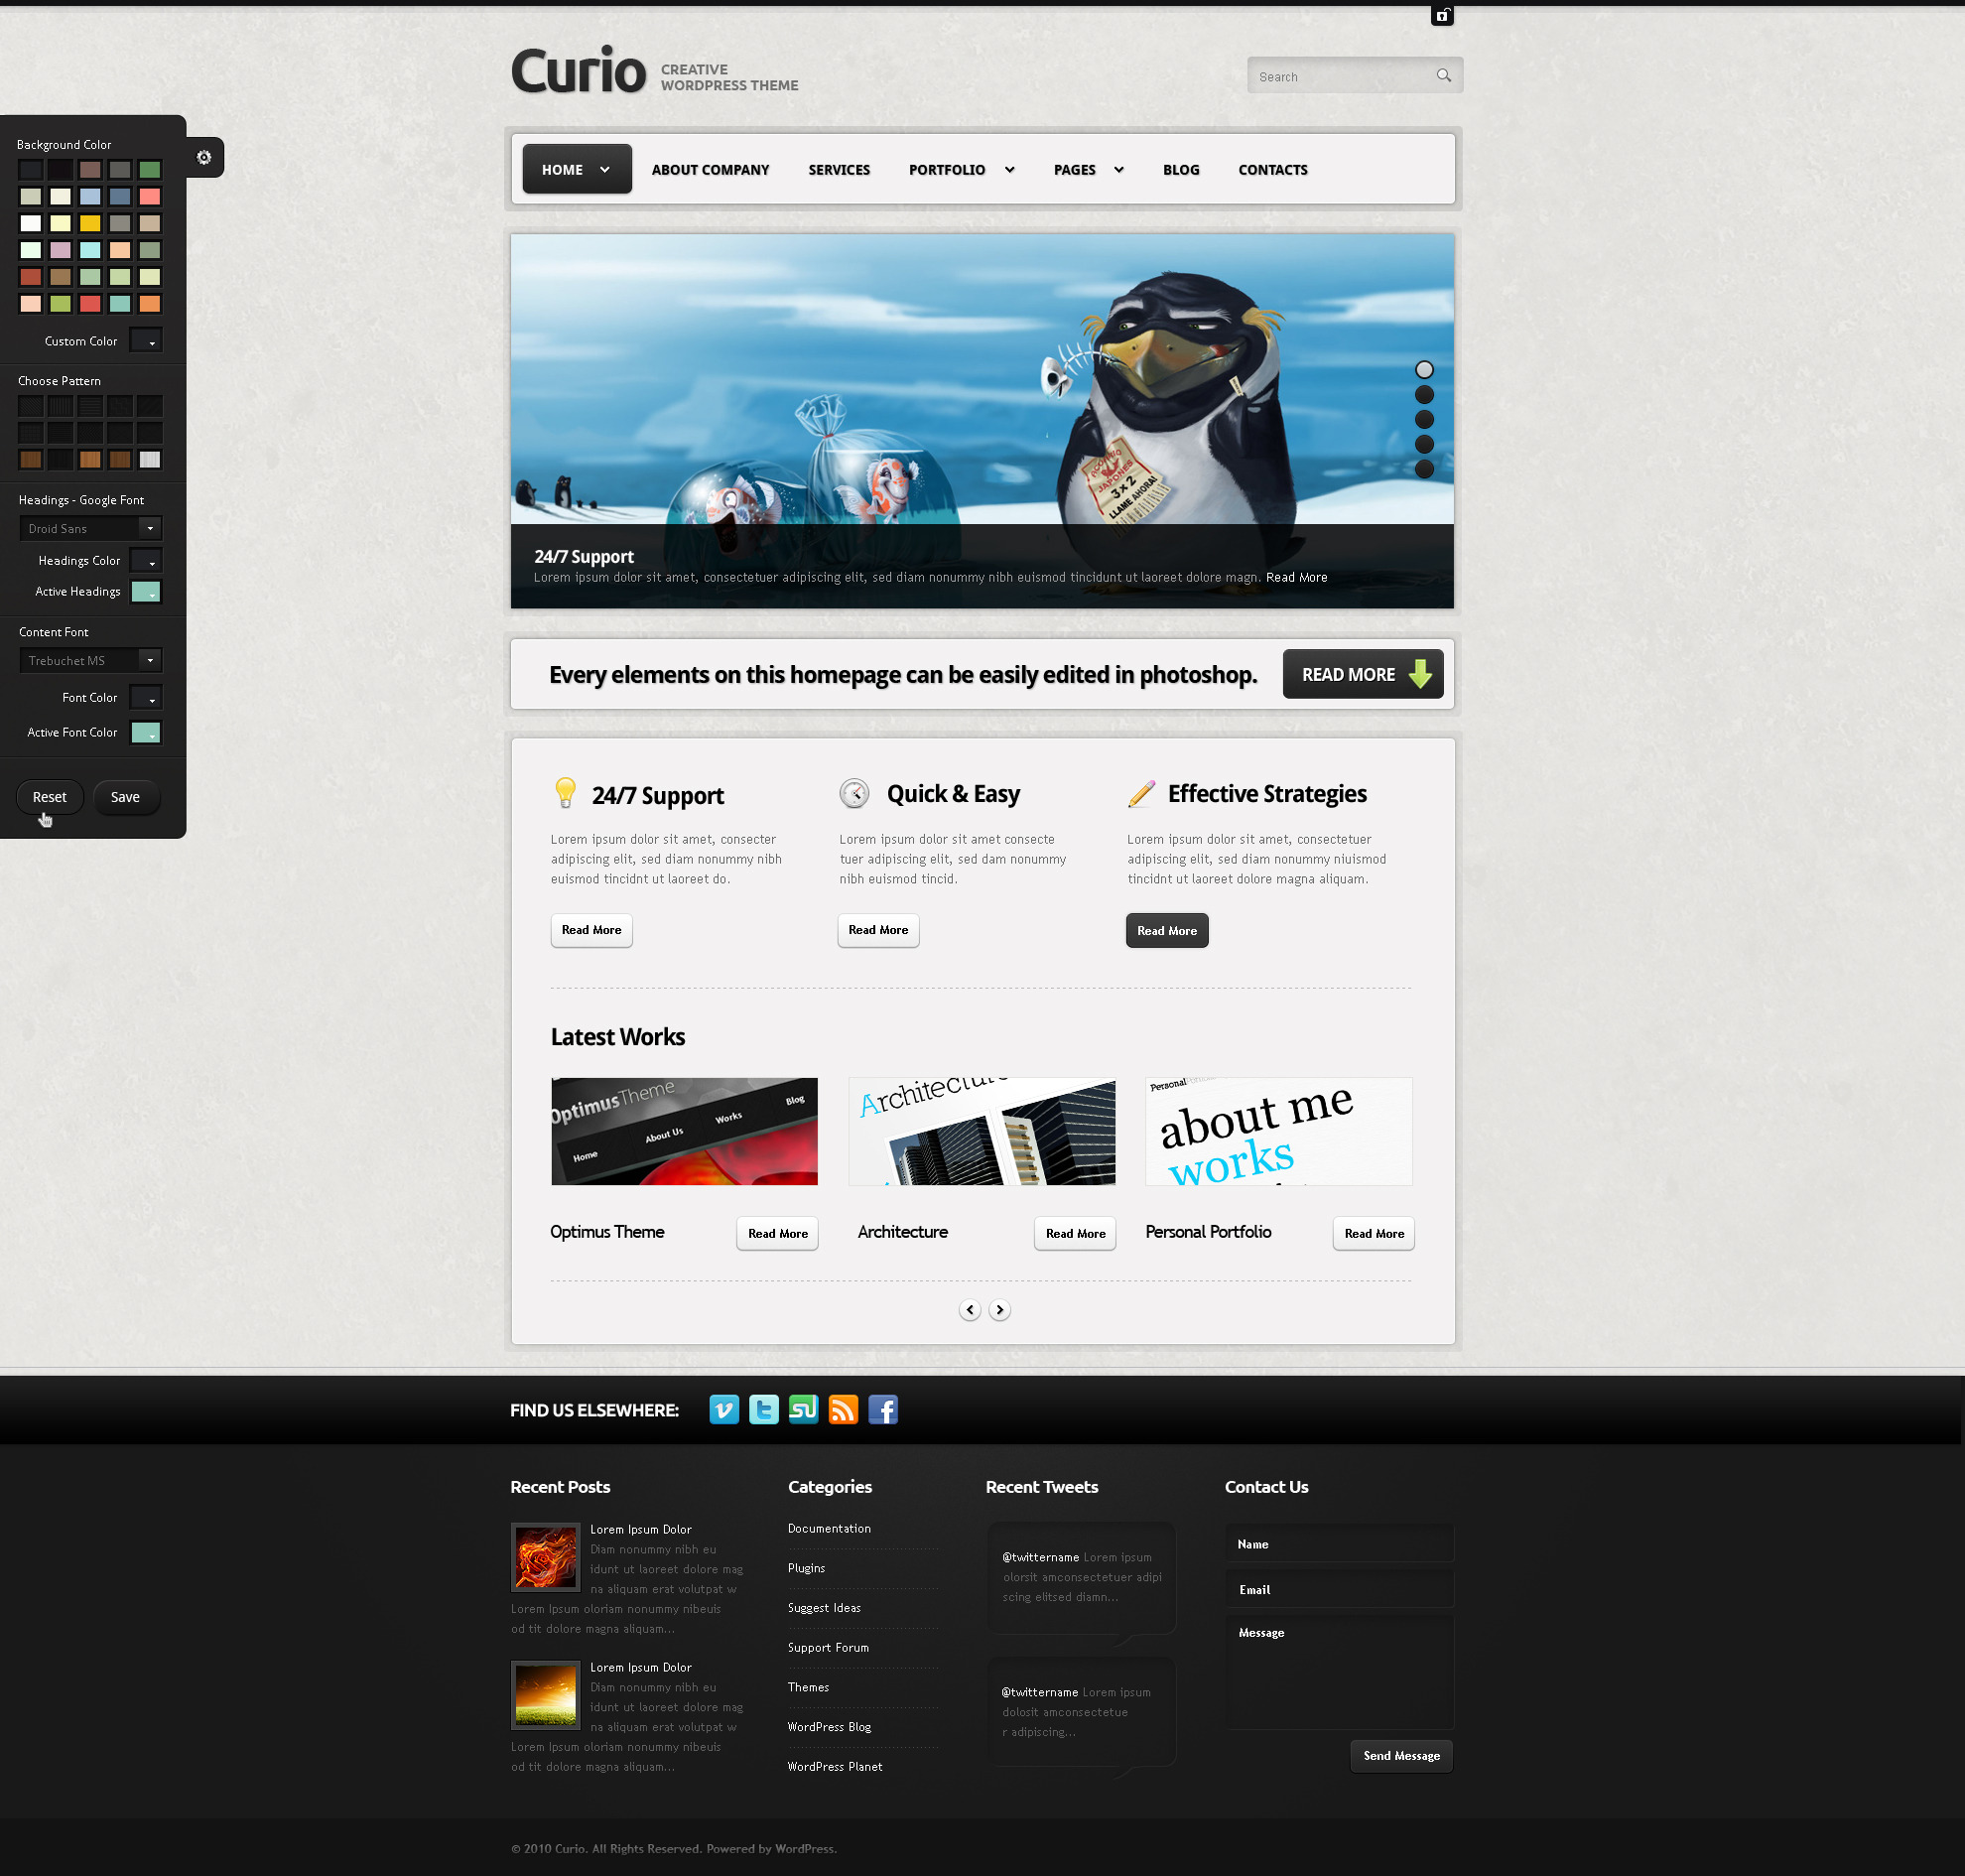 Curio - Clean & Creative Wordpress Theme